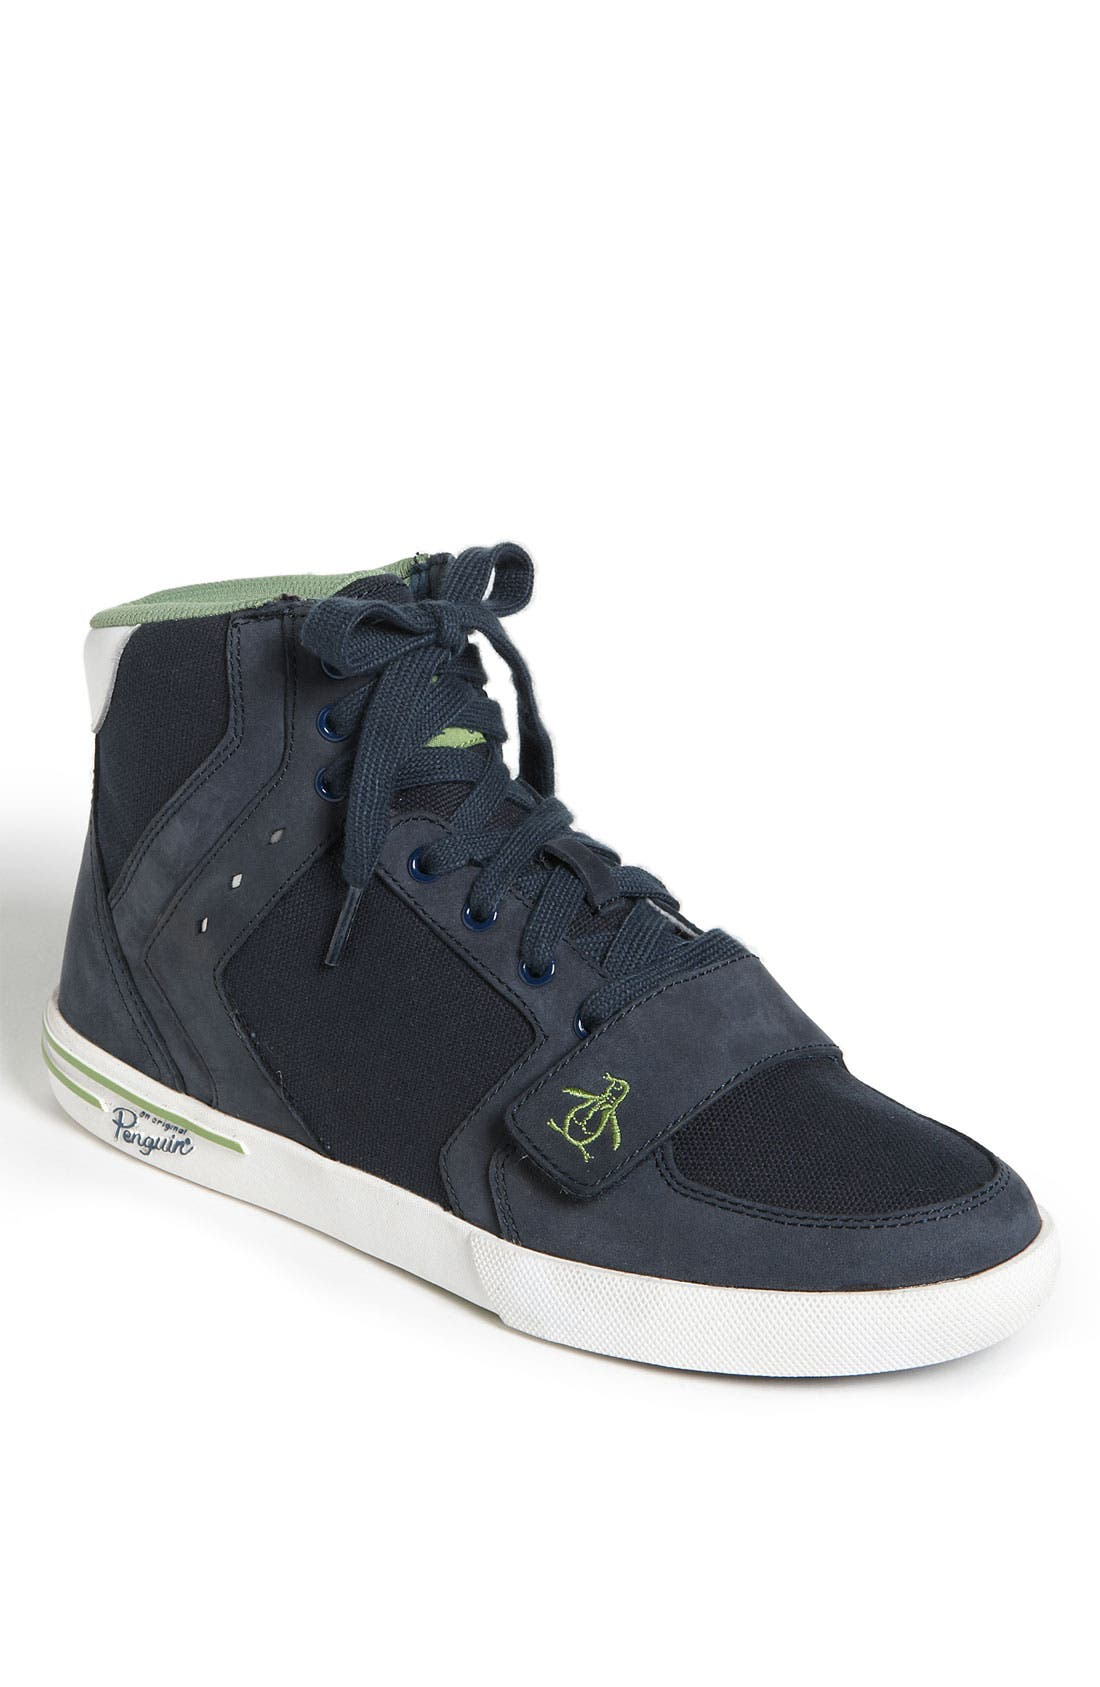 Alternate Image 1 Selected - Original Penguin 'Moby' High Top Sneaker (Men)